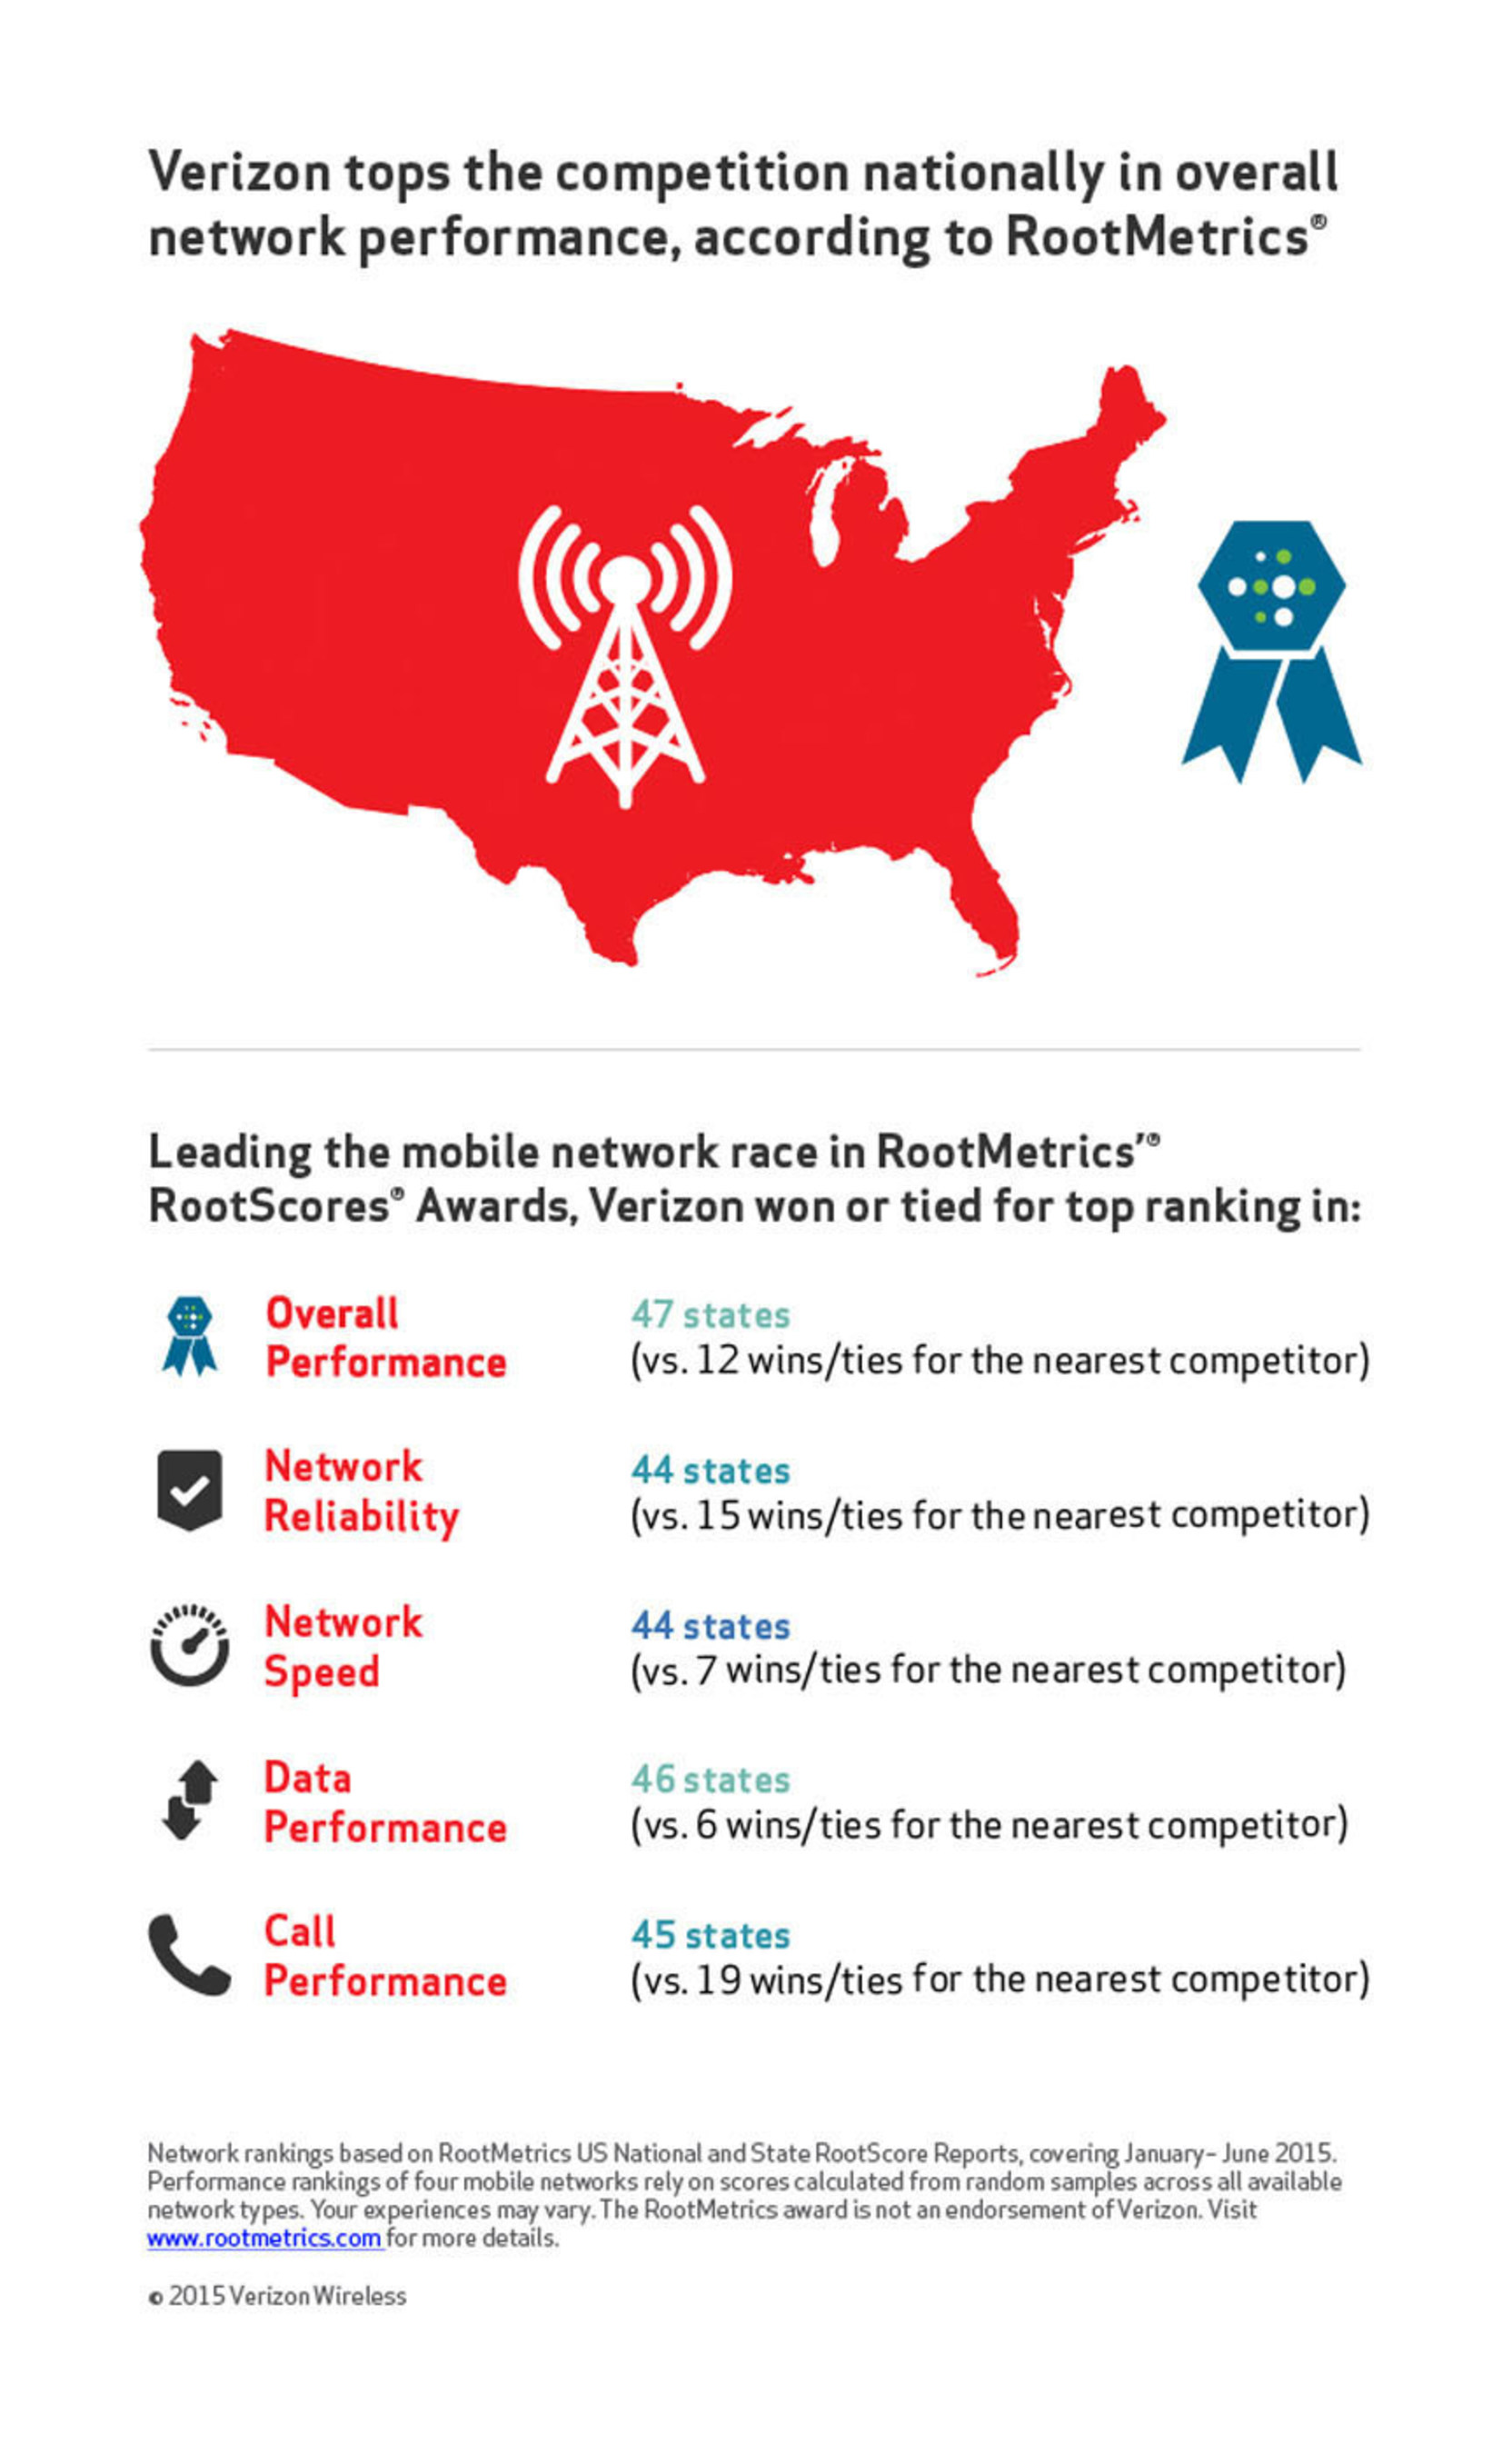 Verizon's Wireless Network Ranked #1 for Overall Performance Nationally by RootMetrics(R)